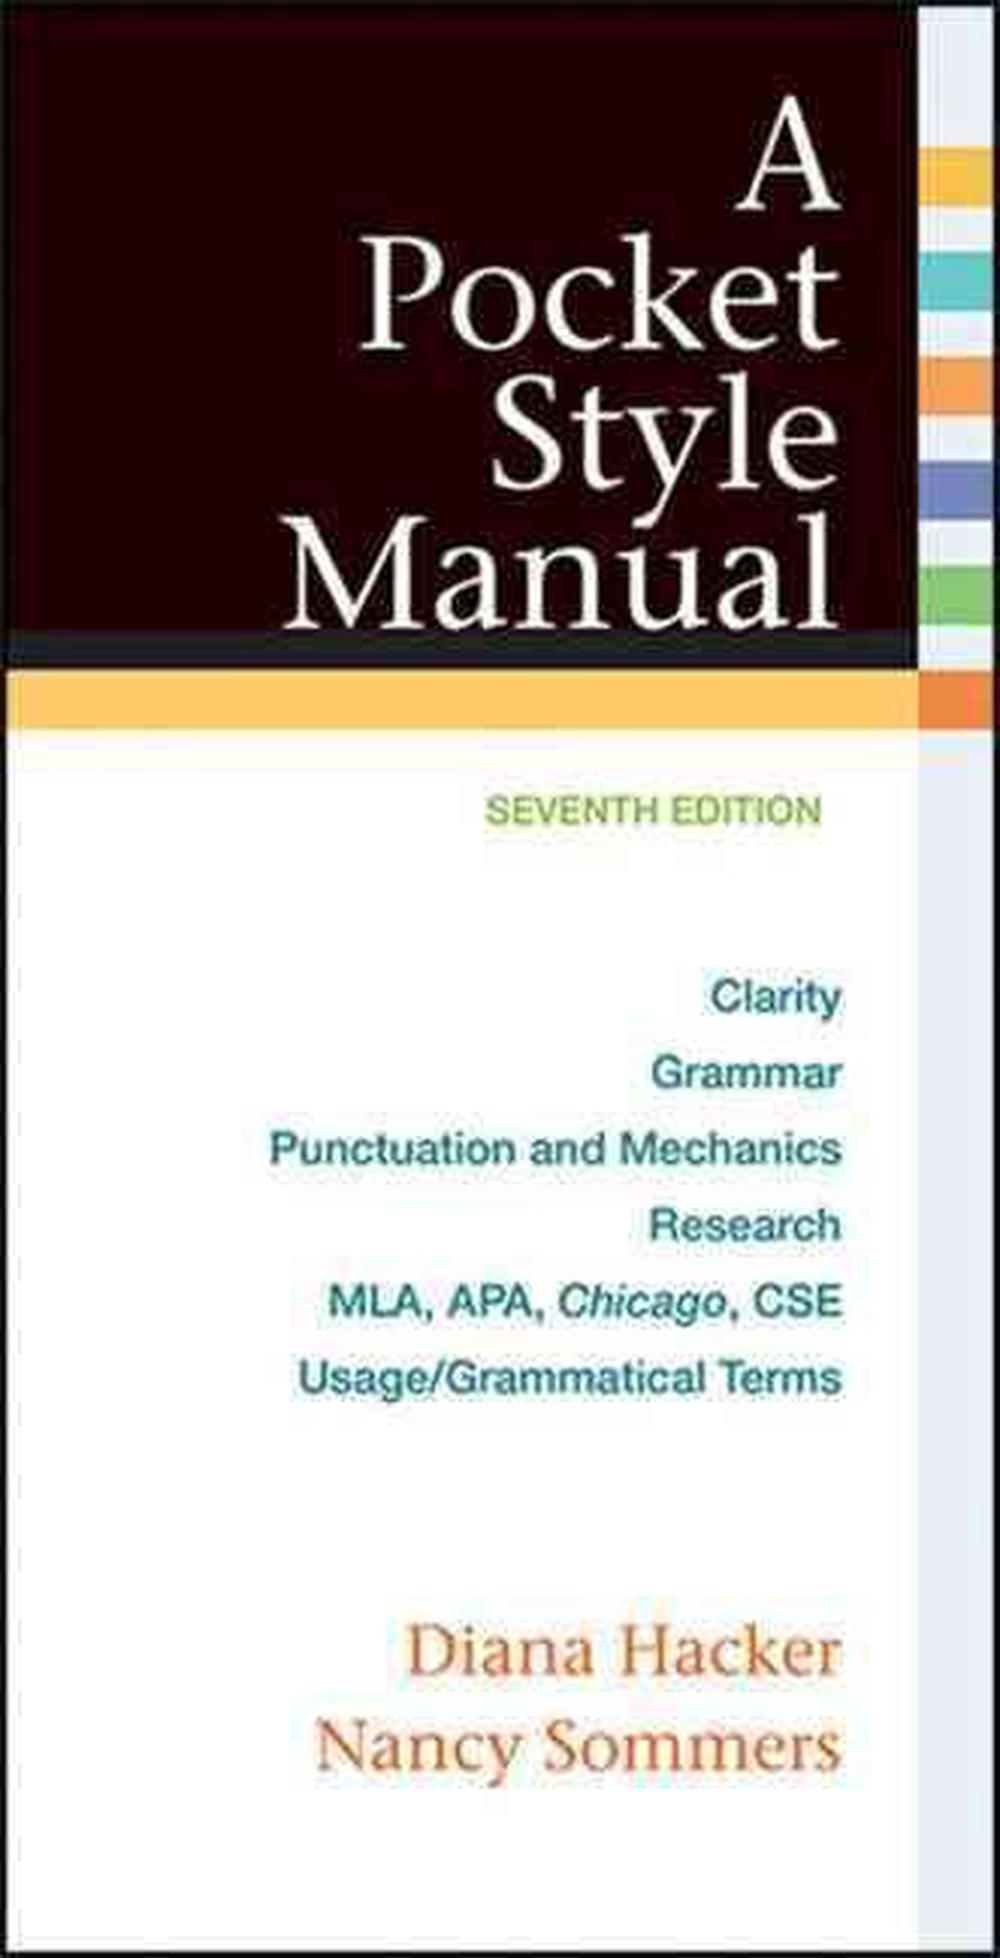 POCKET STYLE MANUAL APA VERSION PDF DOWNLOAD